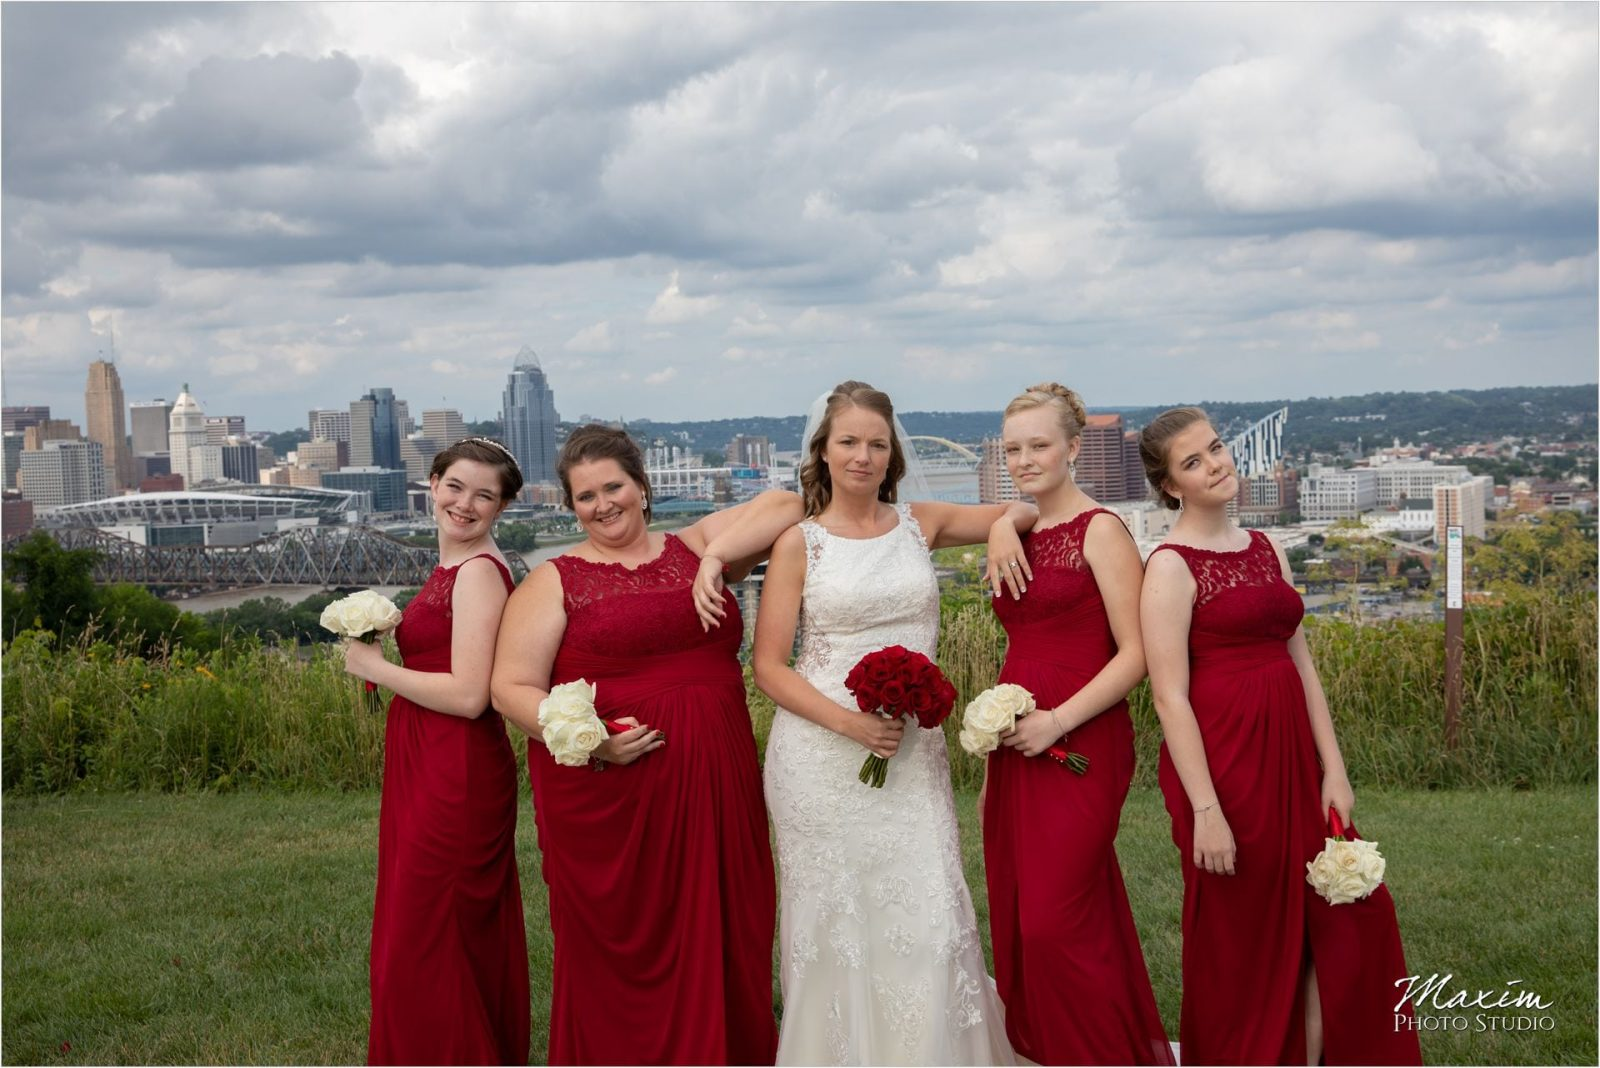 Devou Park Cincinnati downtown overlook bridesmaids